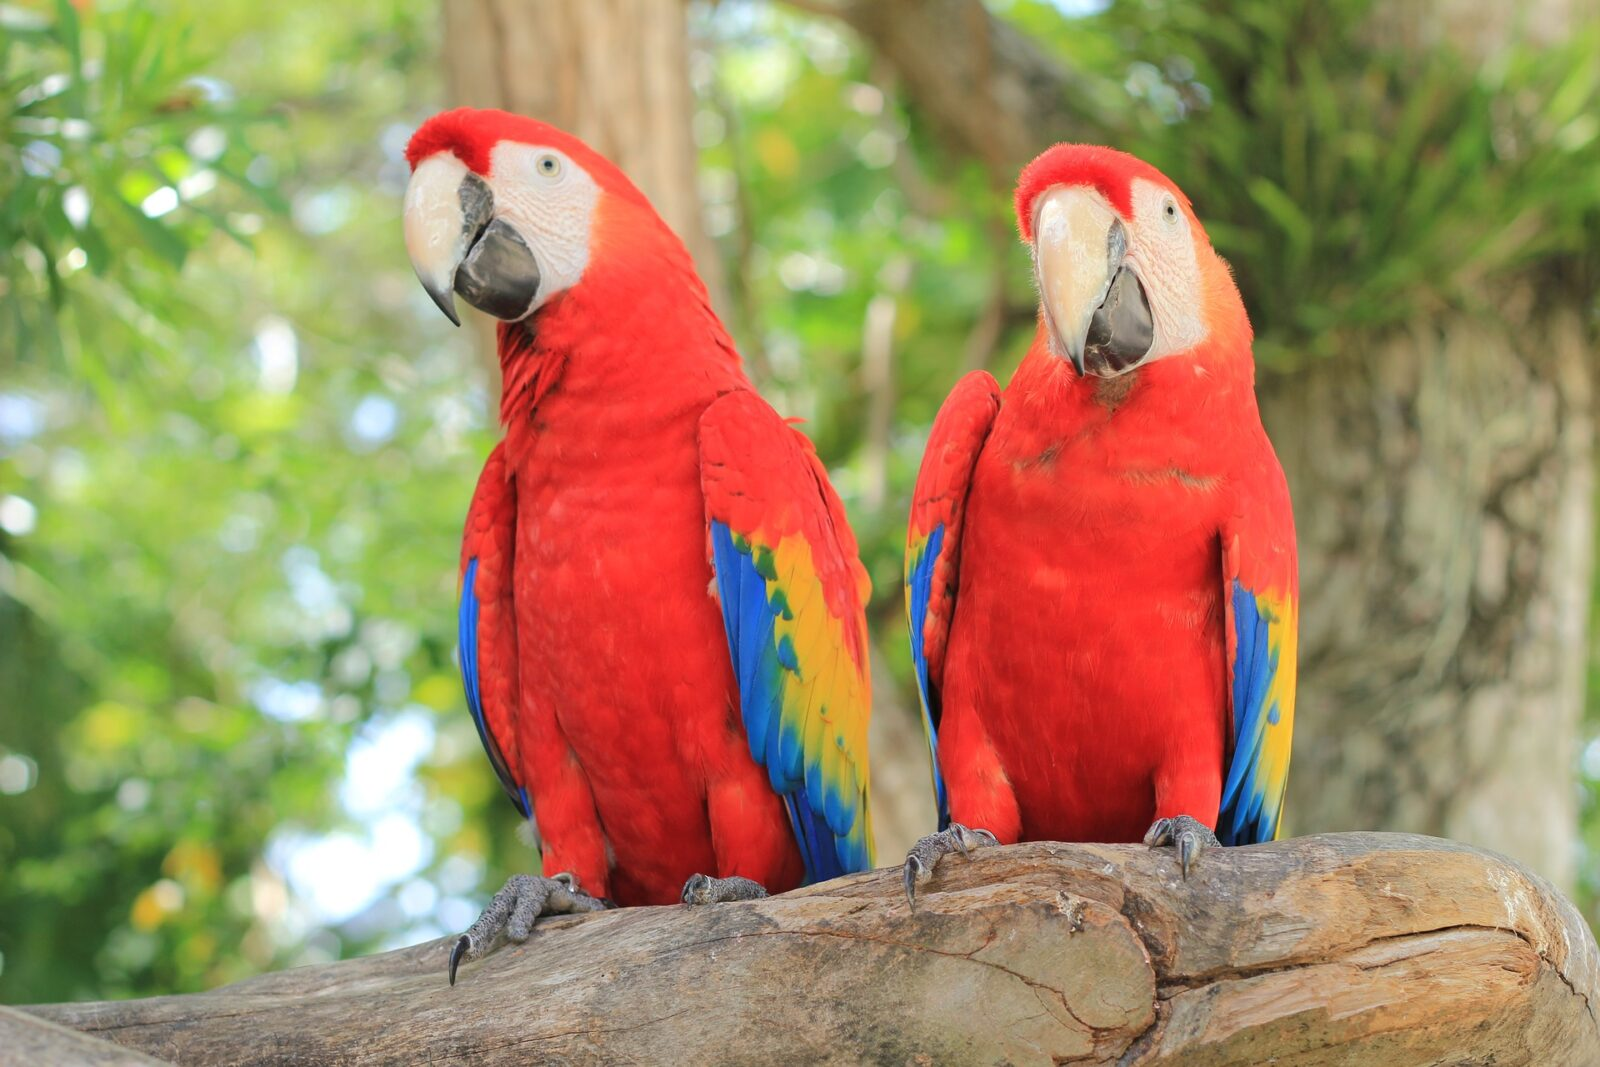 Where Does A Macaw Live?